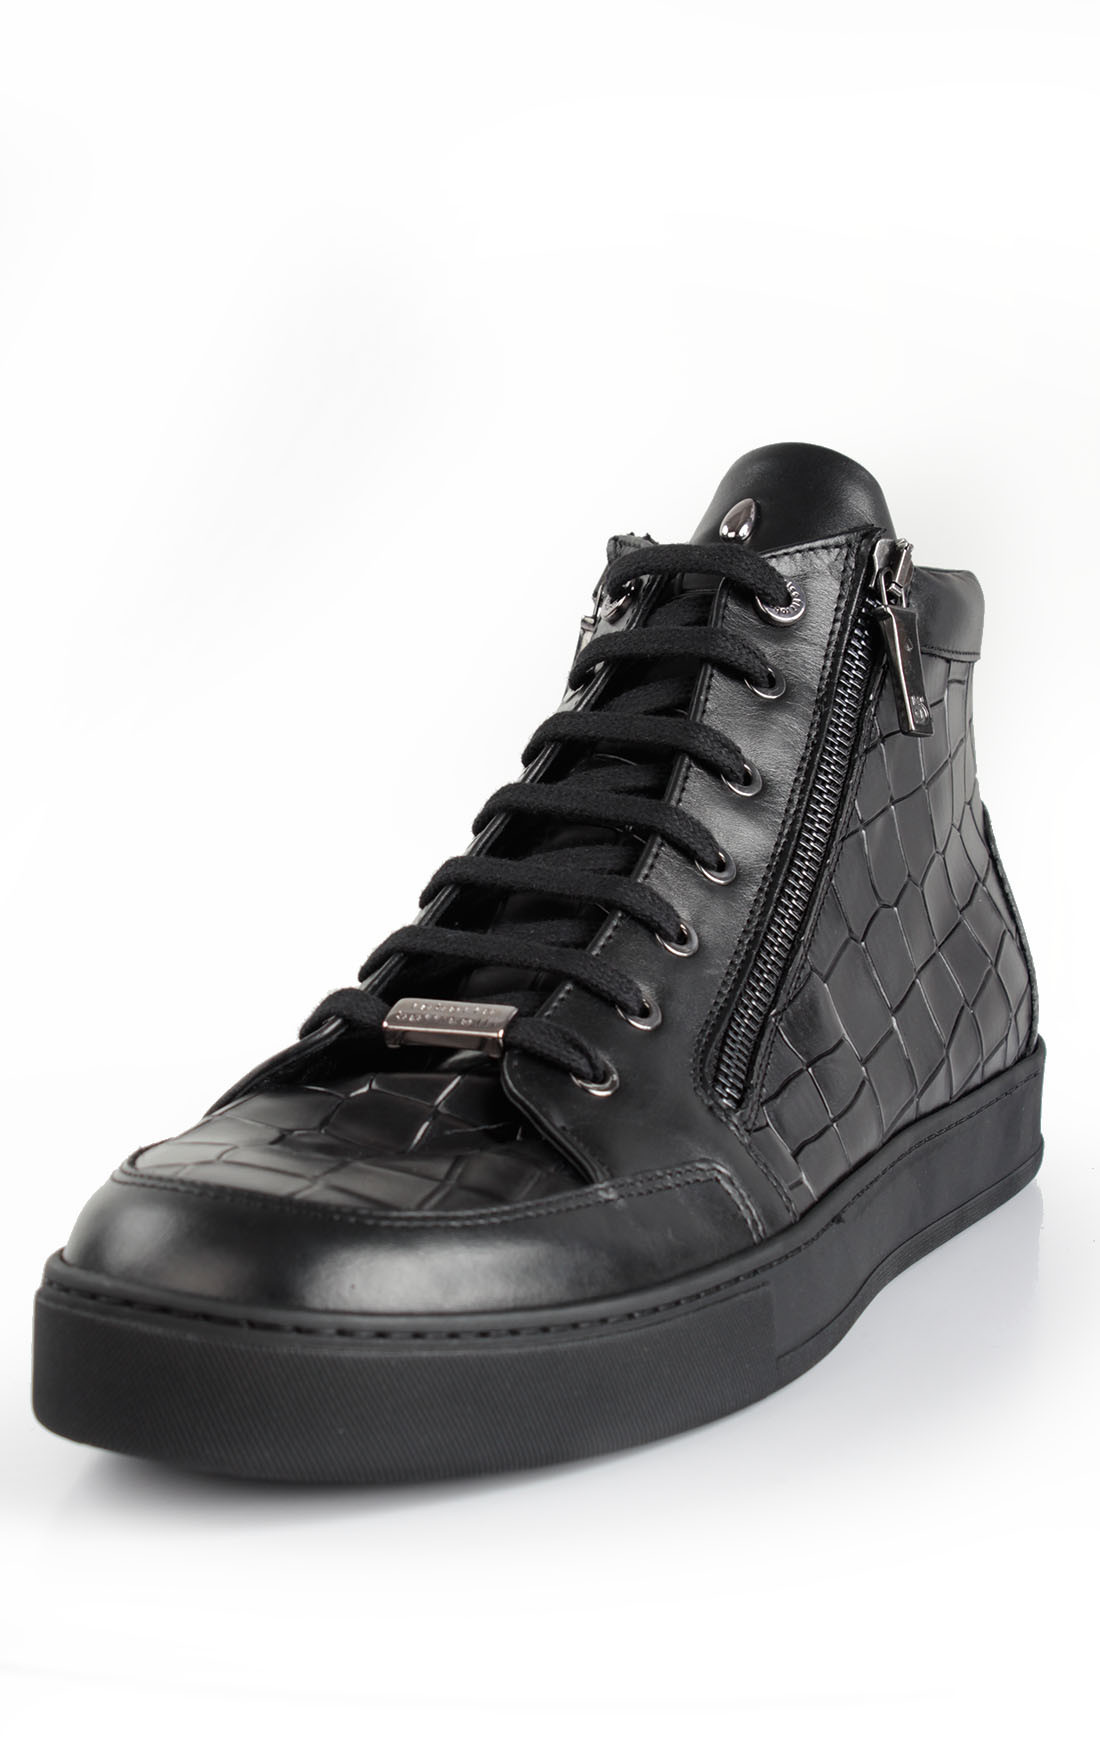 FOOTWEAR - High-tops & sneakers Roberto Botticelli X2mvlO26